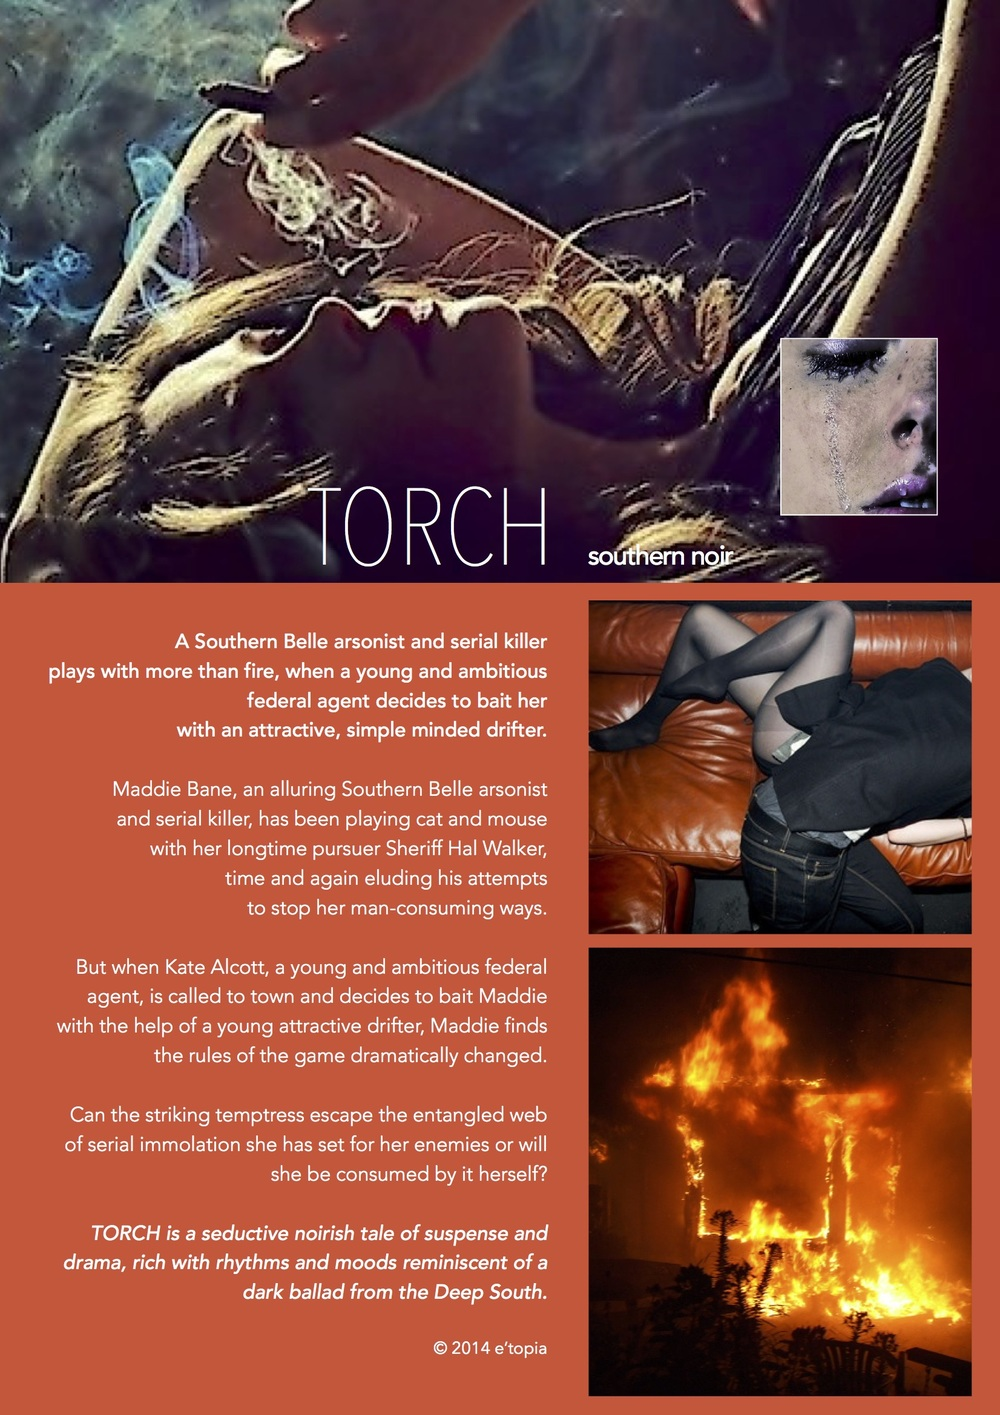 TORCH_pitch C.jpg